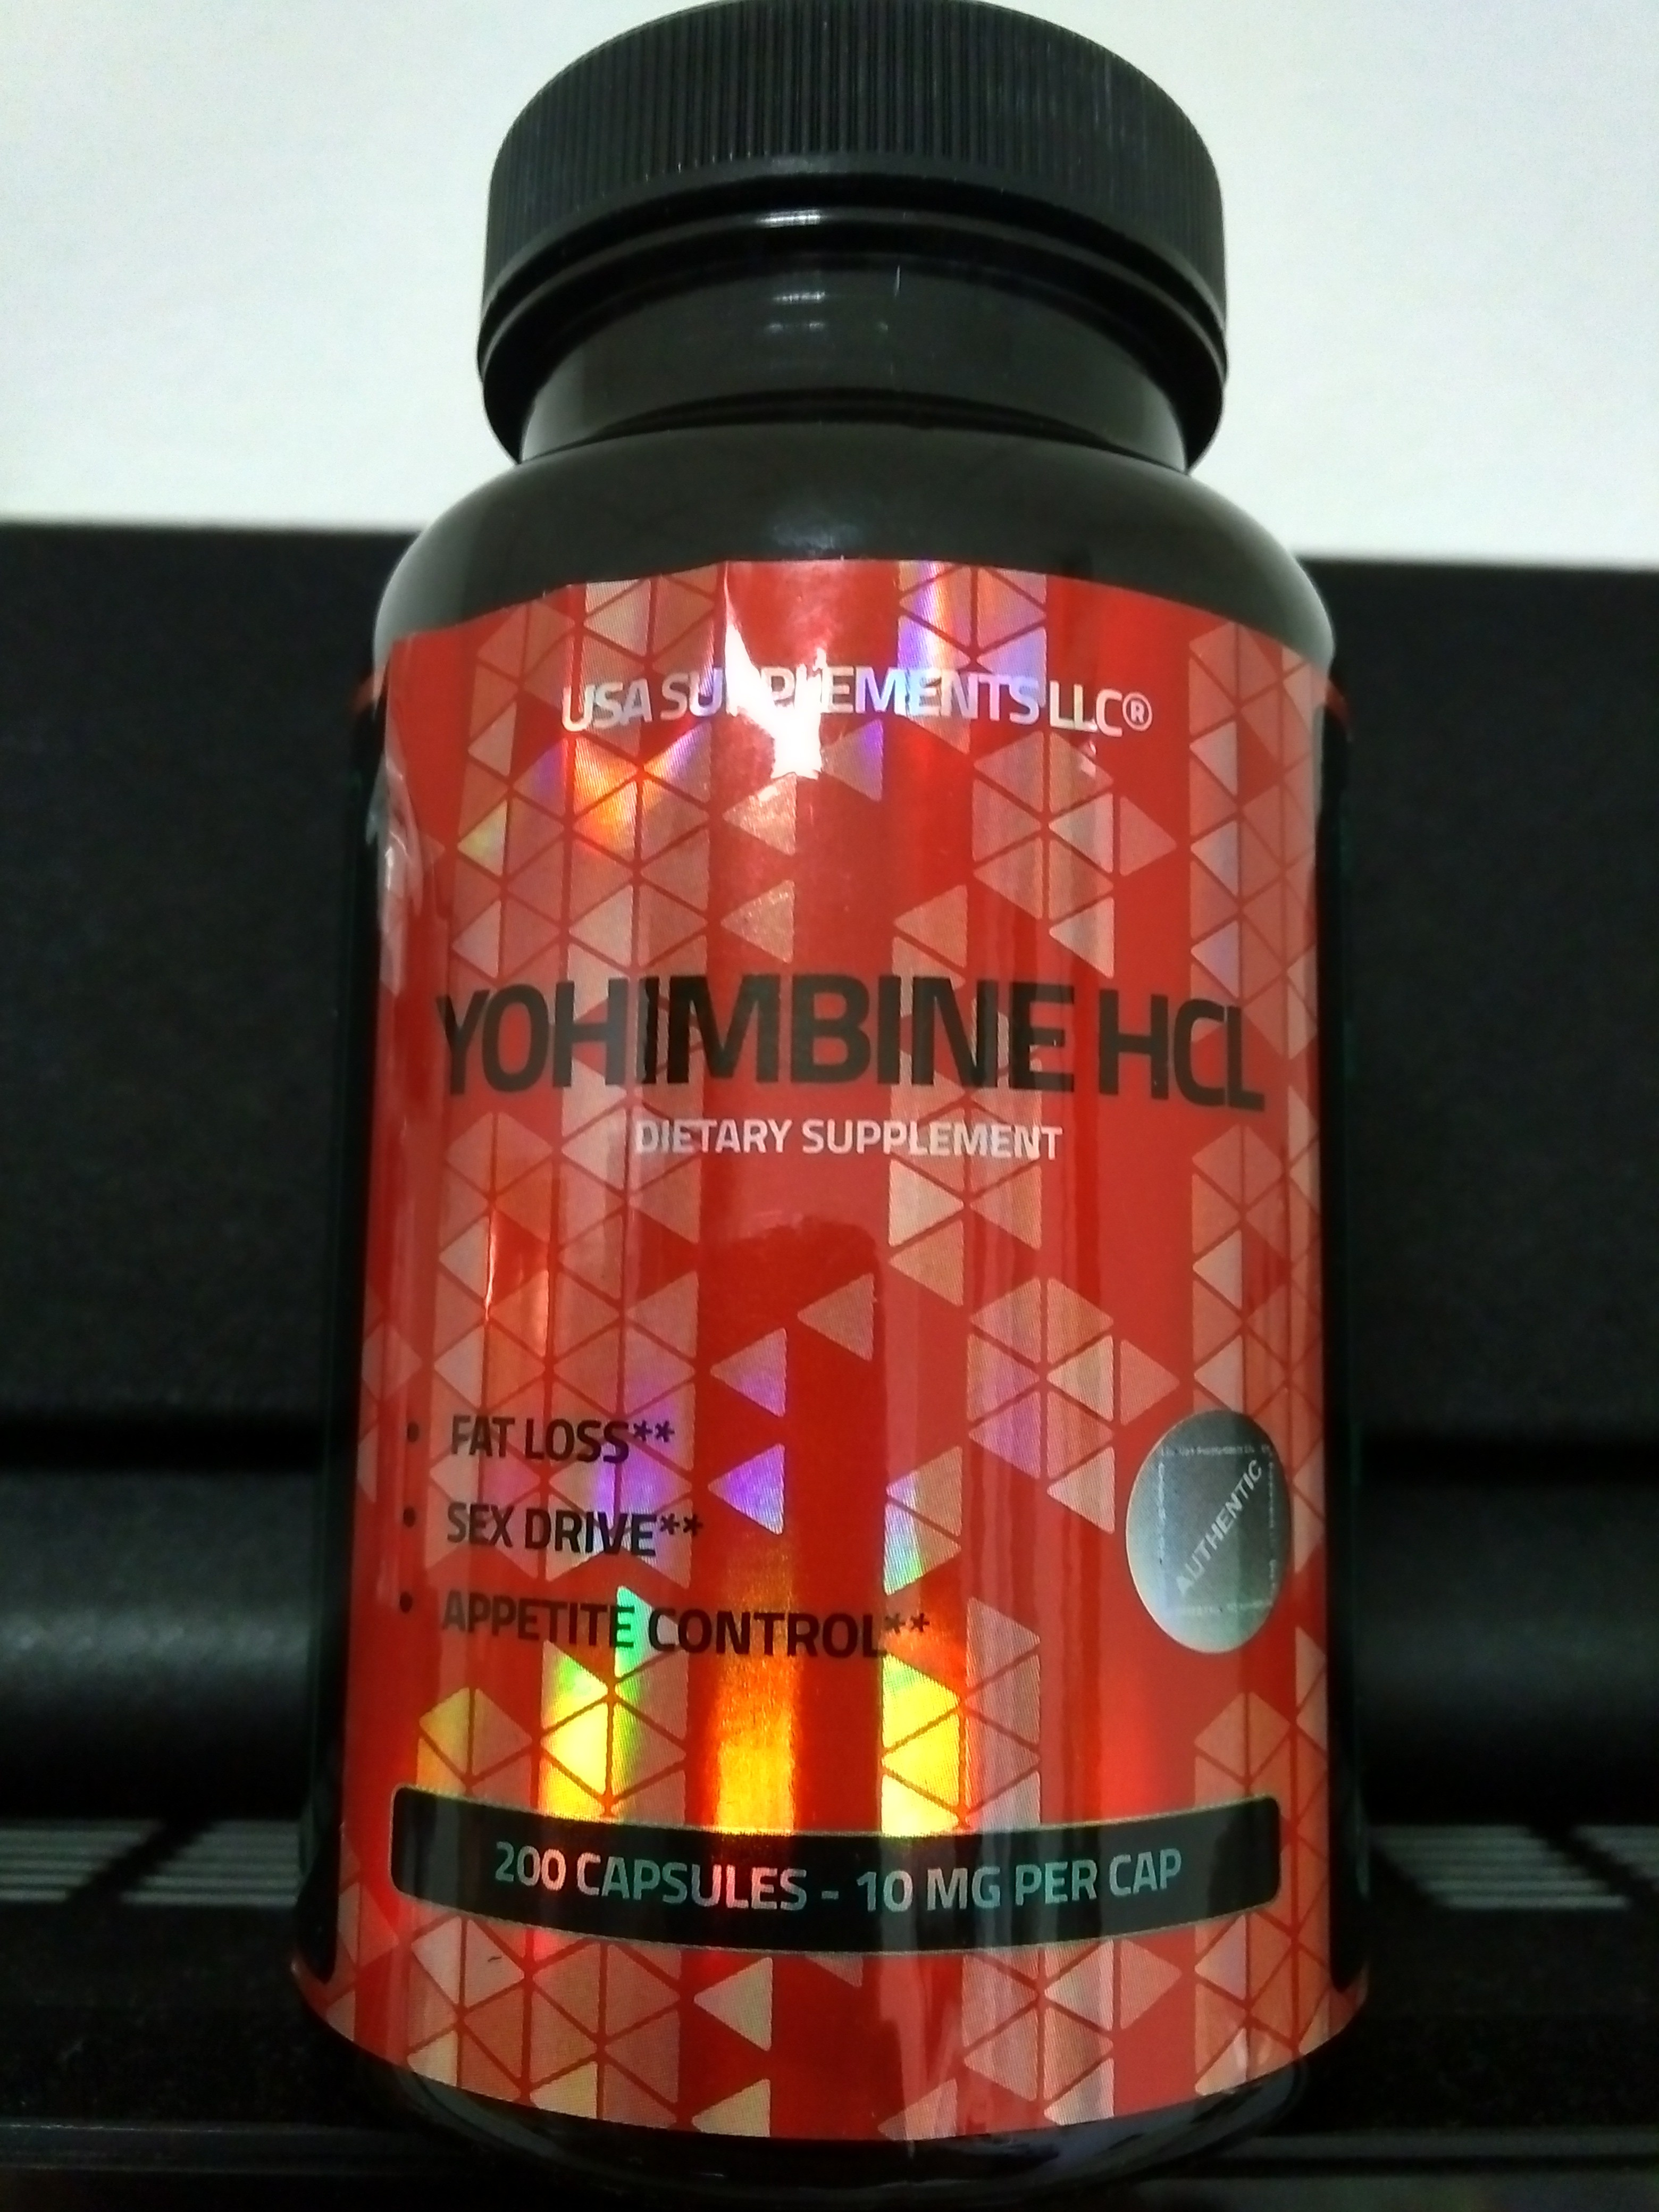 Yohimbine Hcl Kaufen Muscle Lab Diskussionsthread Seite 20 Sarms Ostarin